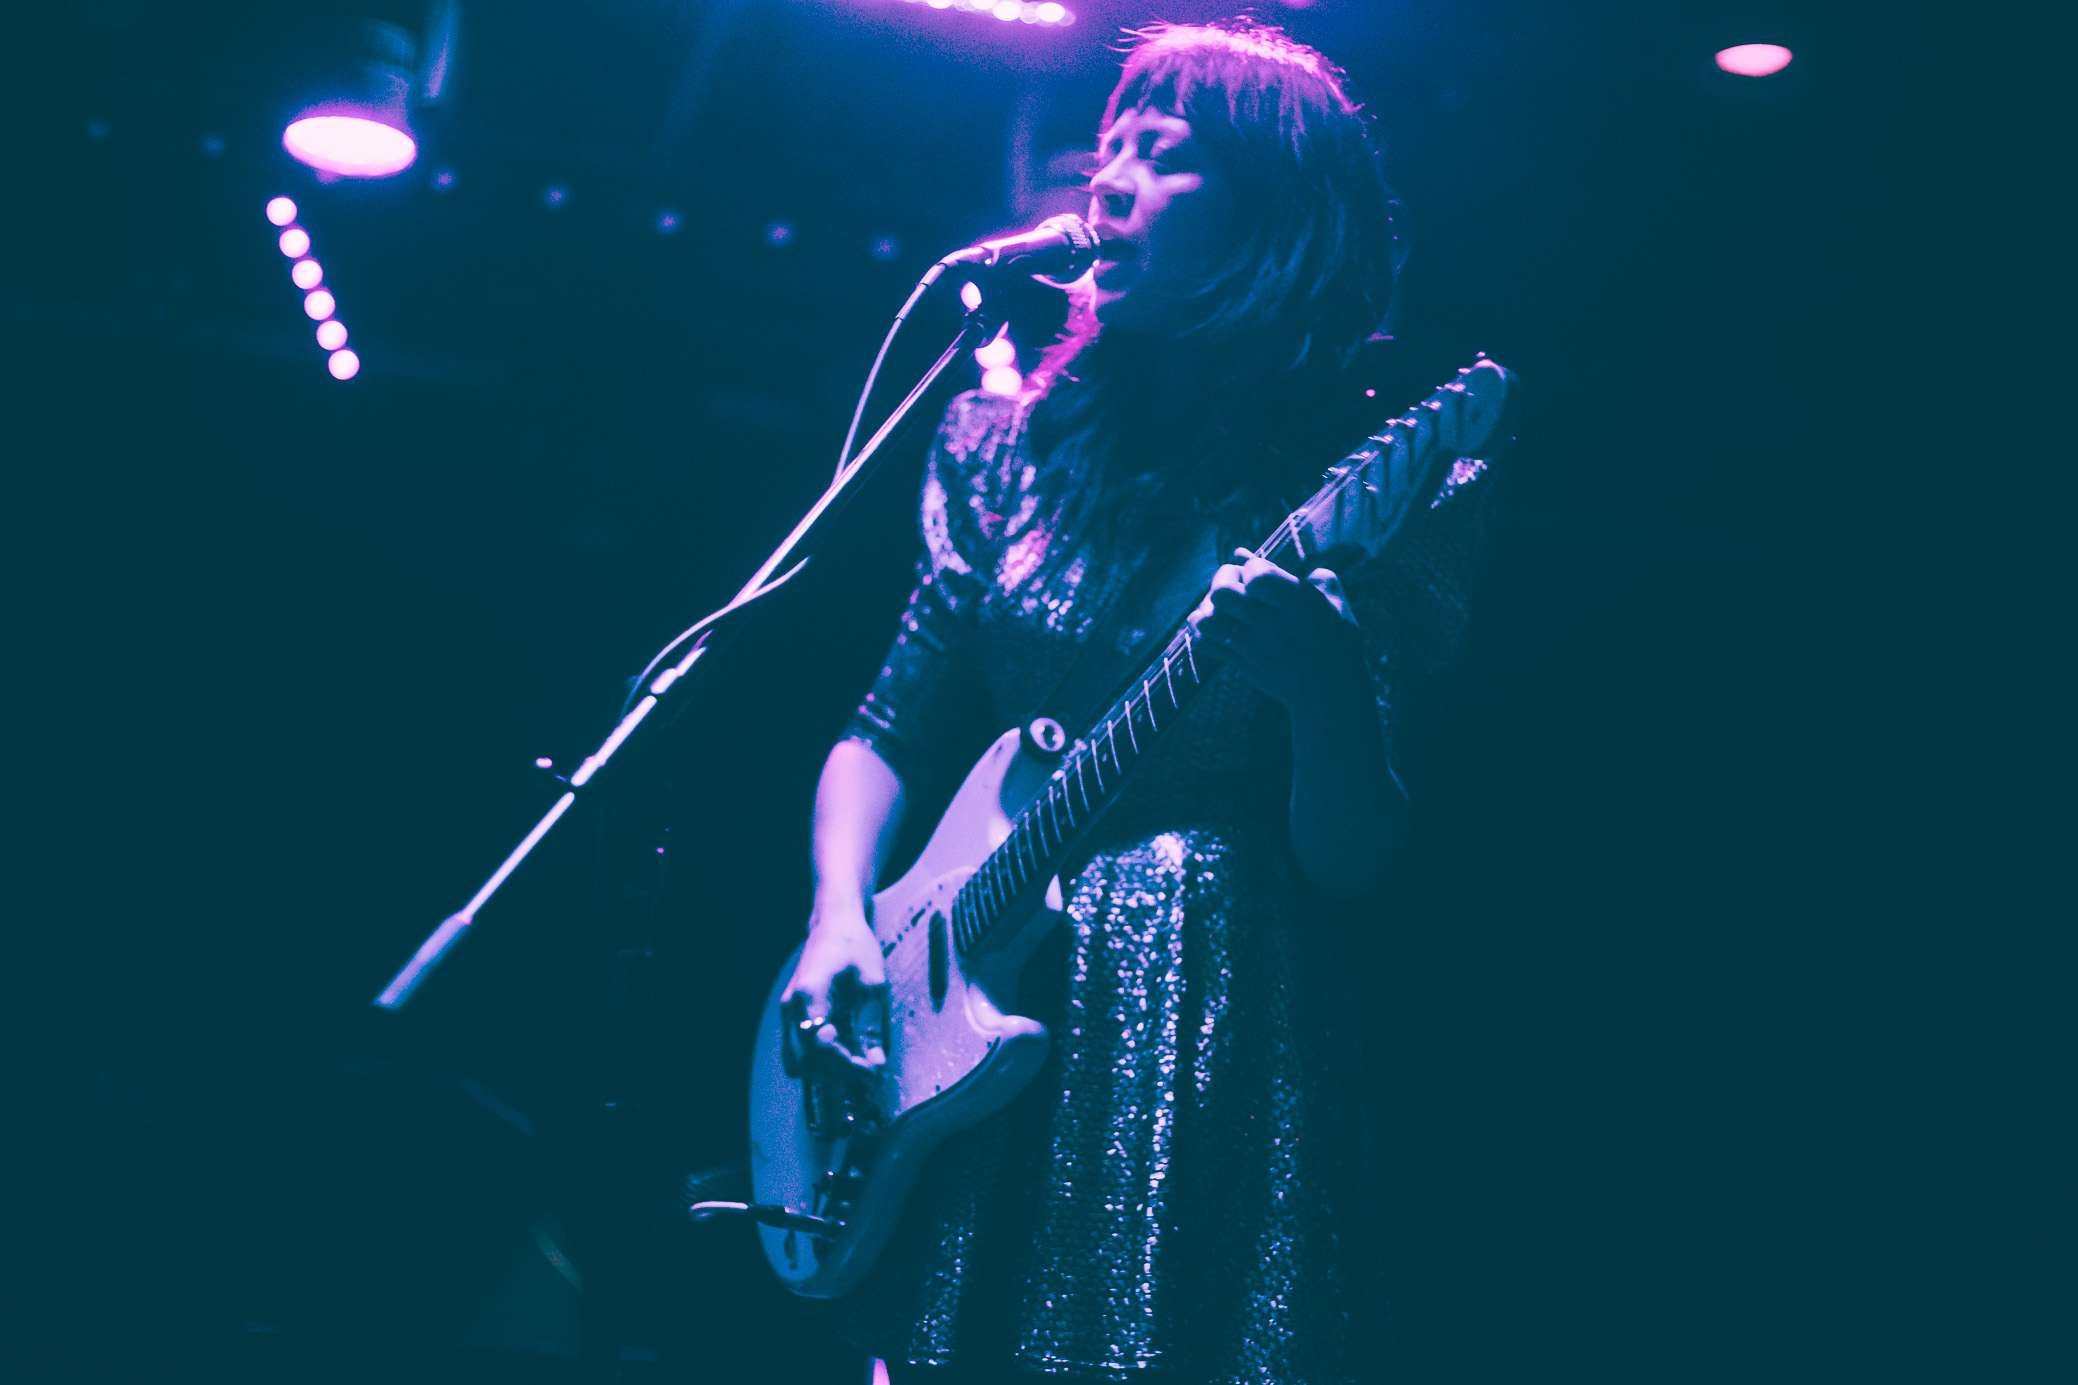 The Coathangers perform in concert at Saturn Birmingham in Birmingham, Alabama on April 4th, 2019. (Photo by David A. Smith / DSmithScenes)